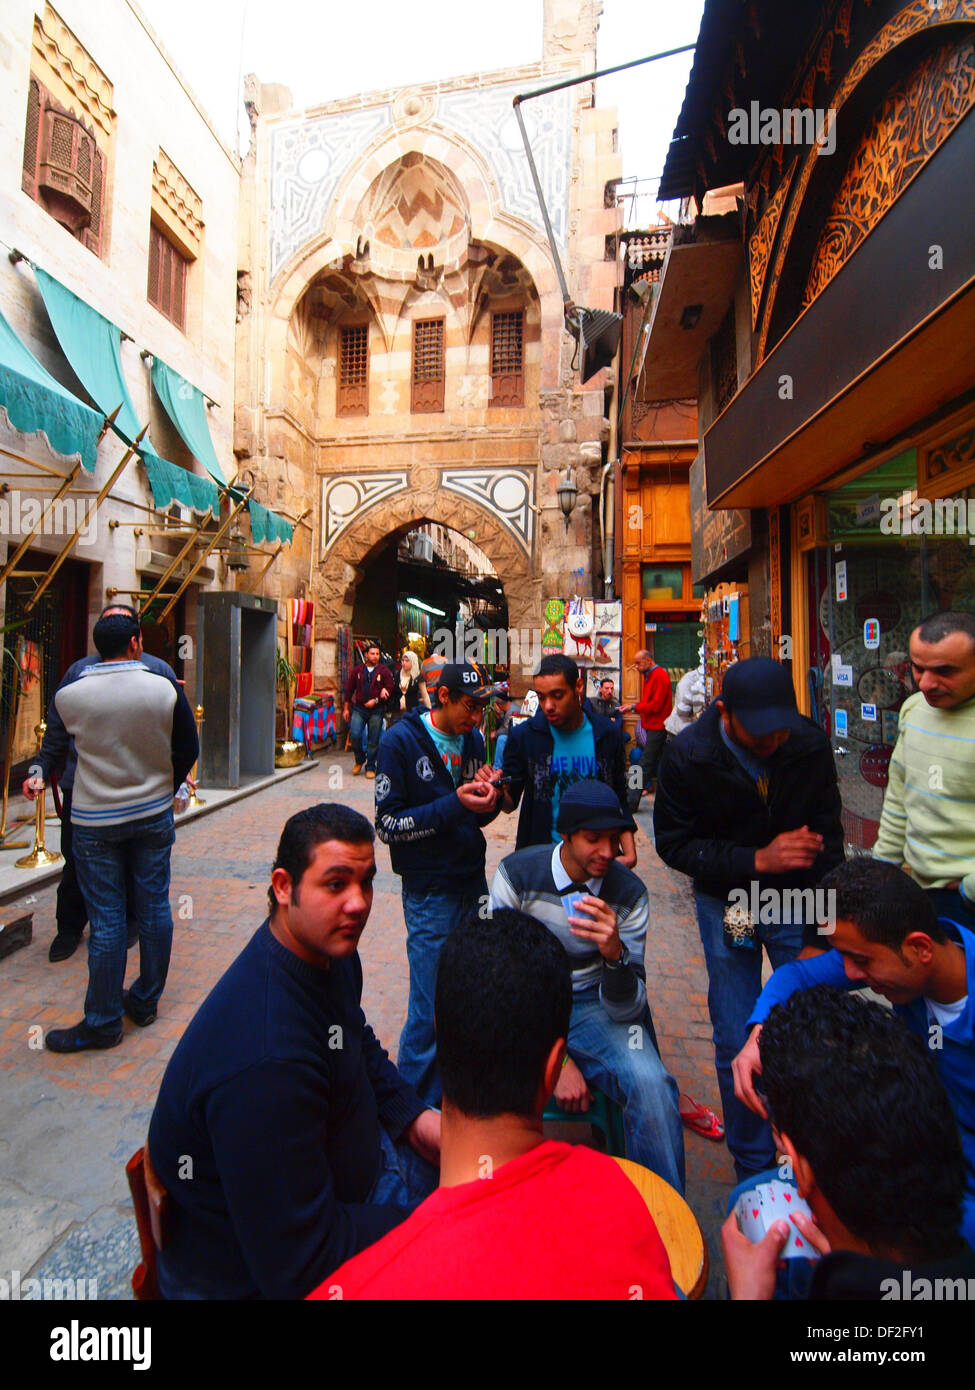 Khan El Khalili, Islamic Quarter, Cairo, Egypt Stock Photo